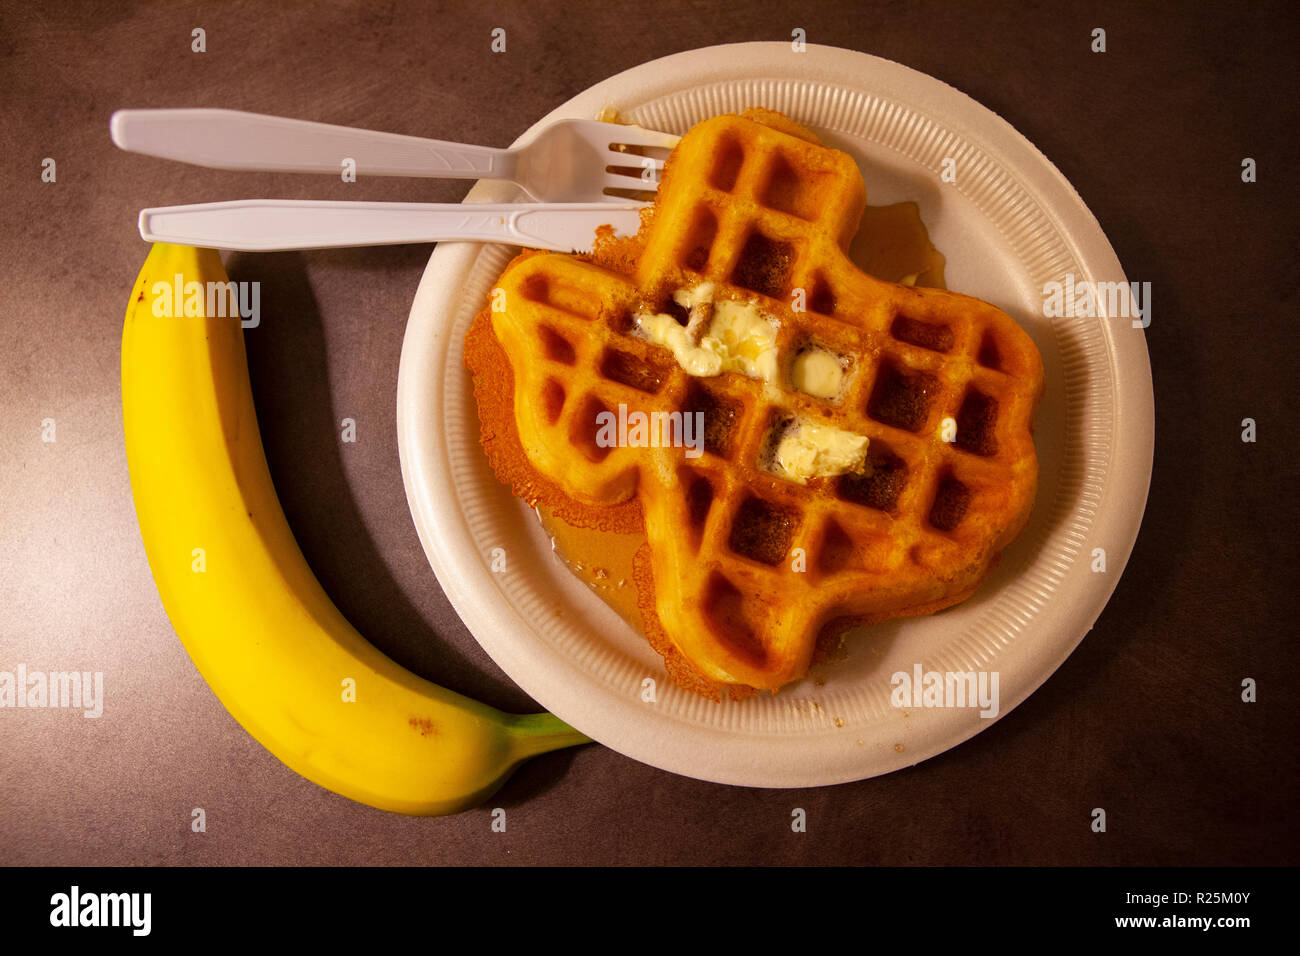 Waffle in the shape of Texas, photographed in Amarillo, TX. - Stock Image